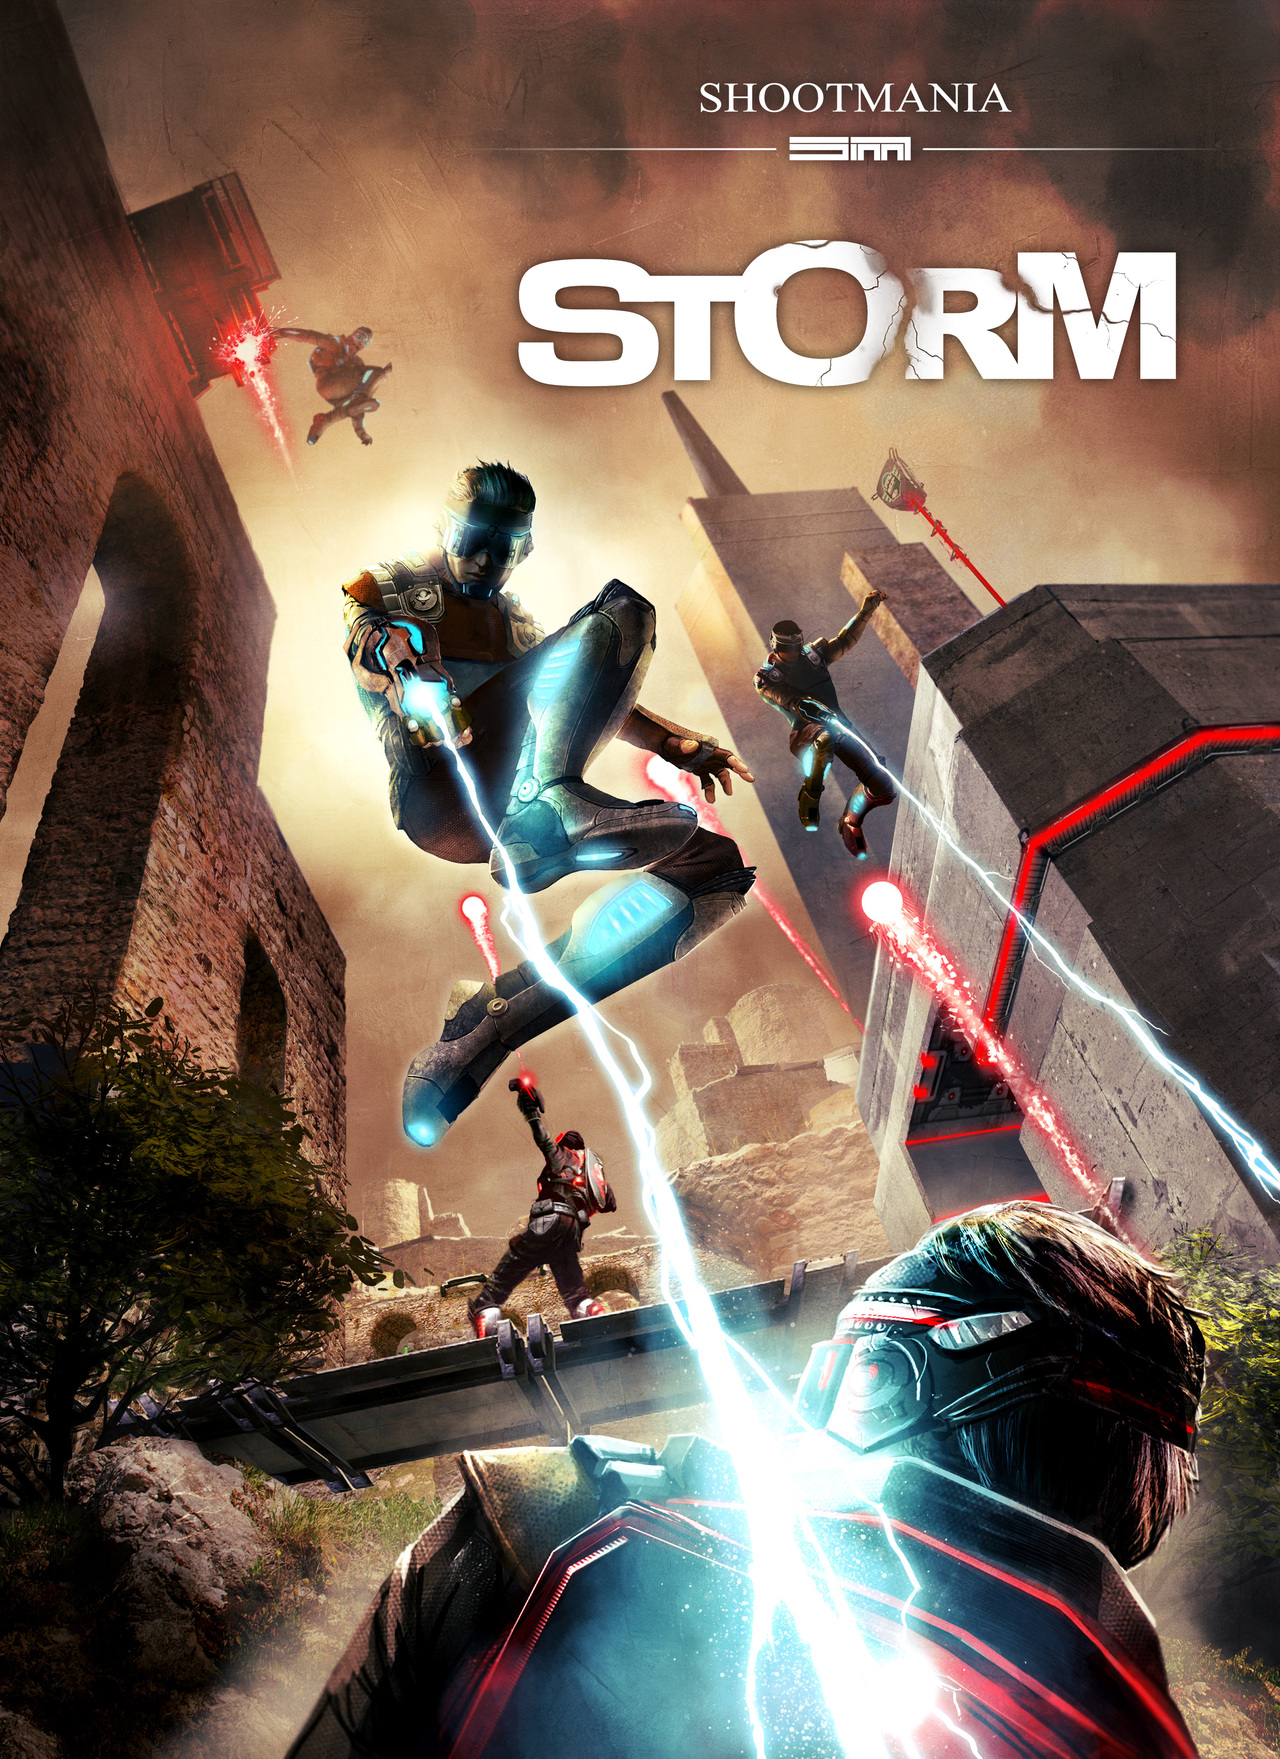 https://i2.wp.com/image.jeuxvideo.com/images/pc/s/h/shootmania-storm-pc-1338900123-015.jpg